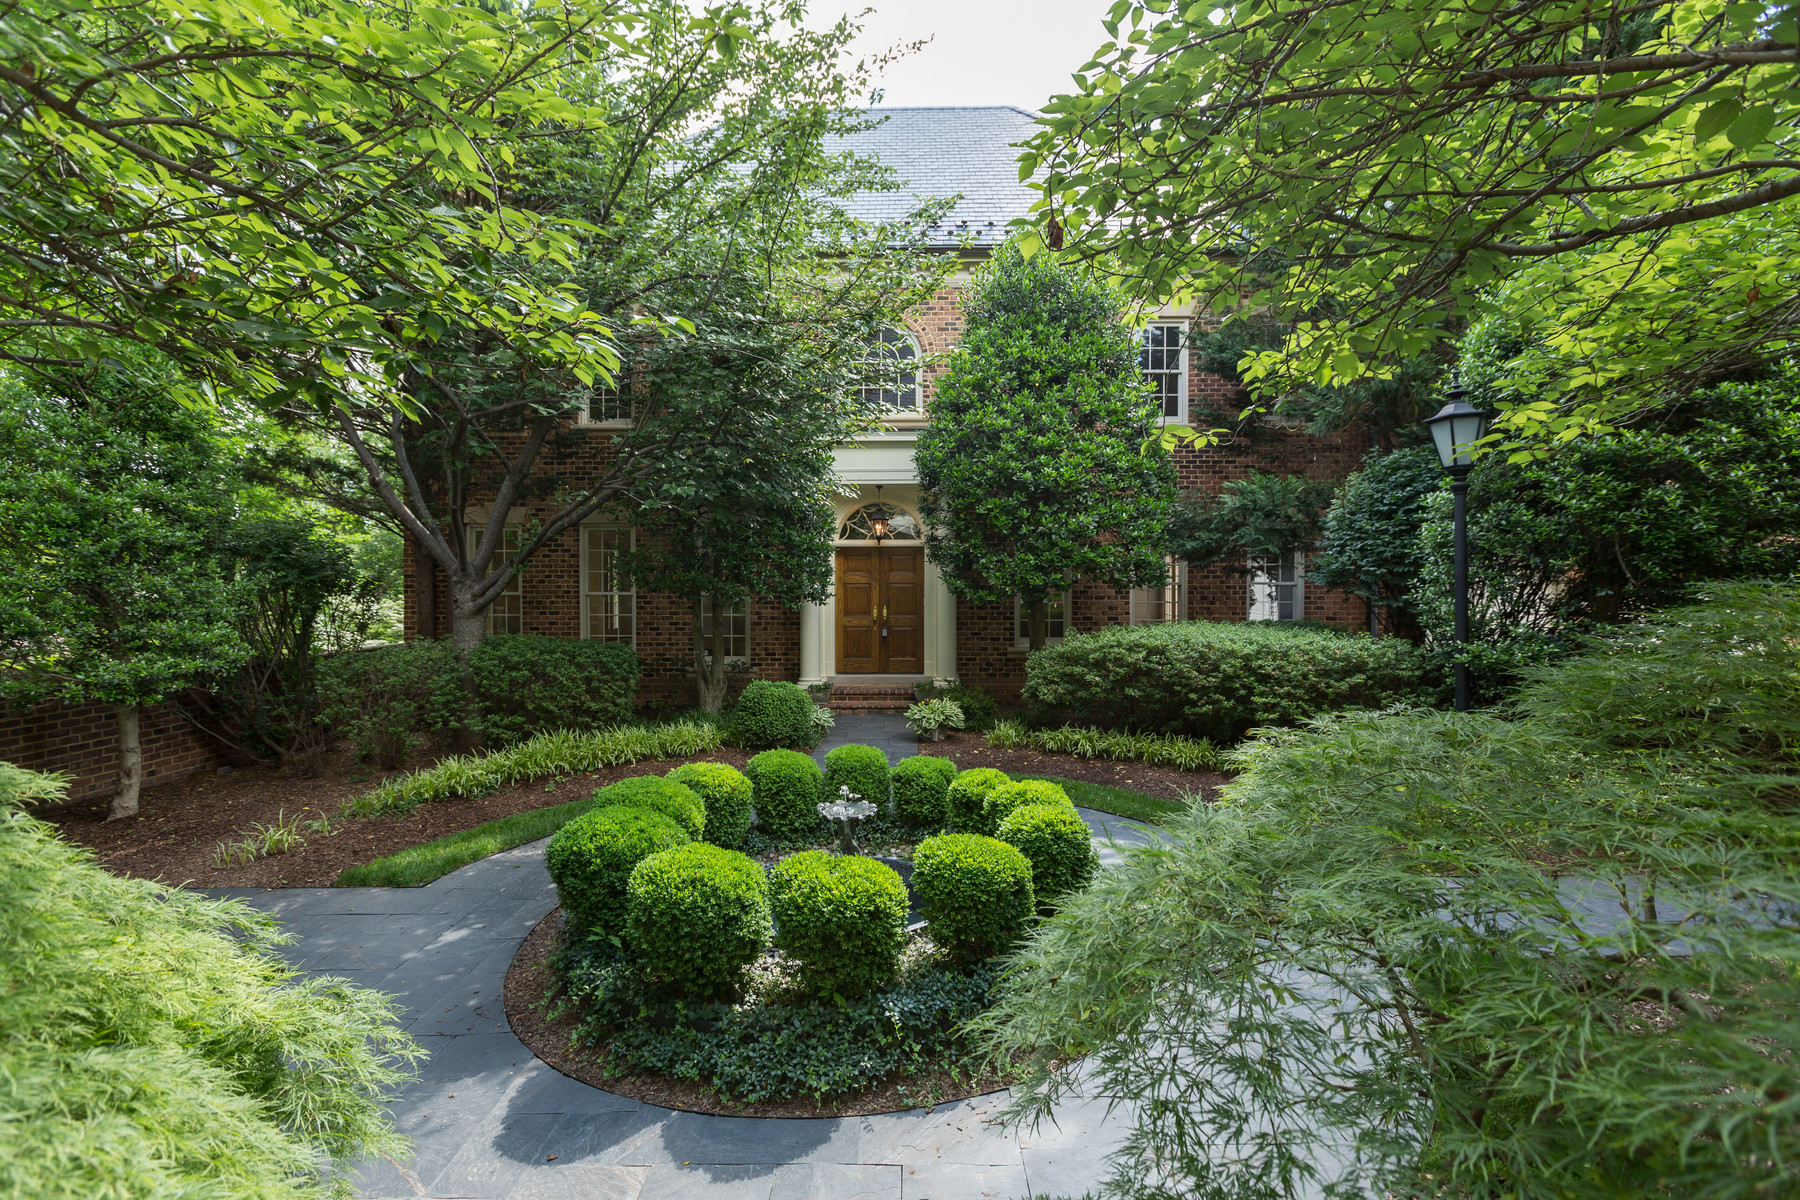 Townhouse for Sale at 1209 Stuart Robeson Drive, Mclean McLean, Virginia 22101 United States